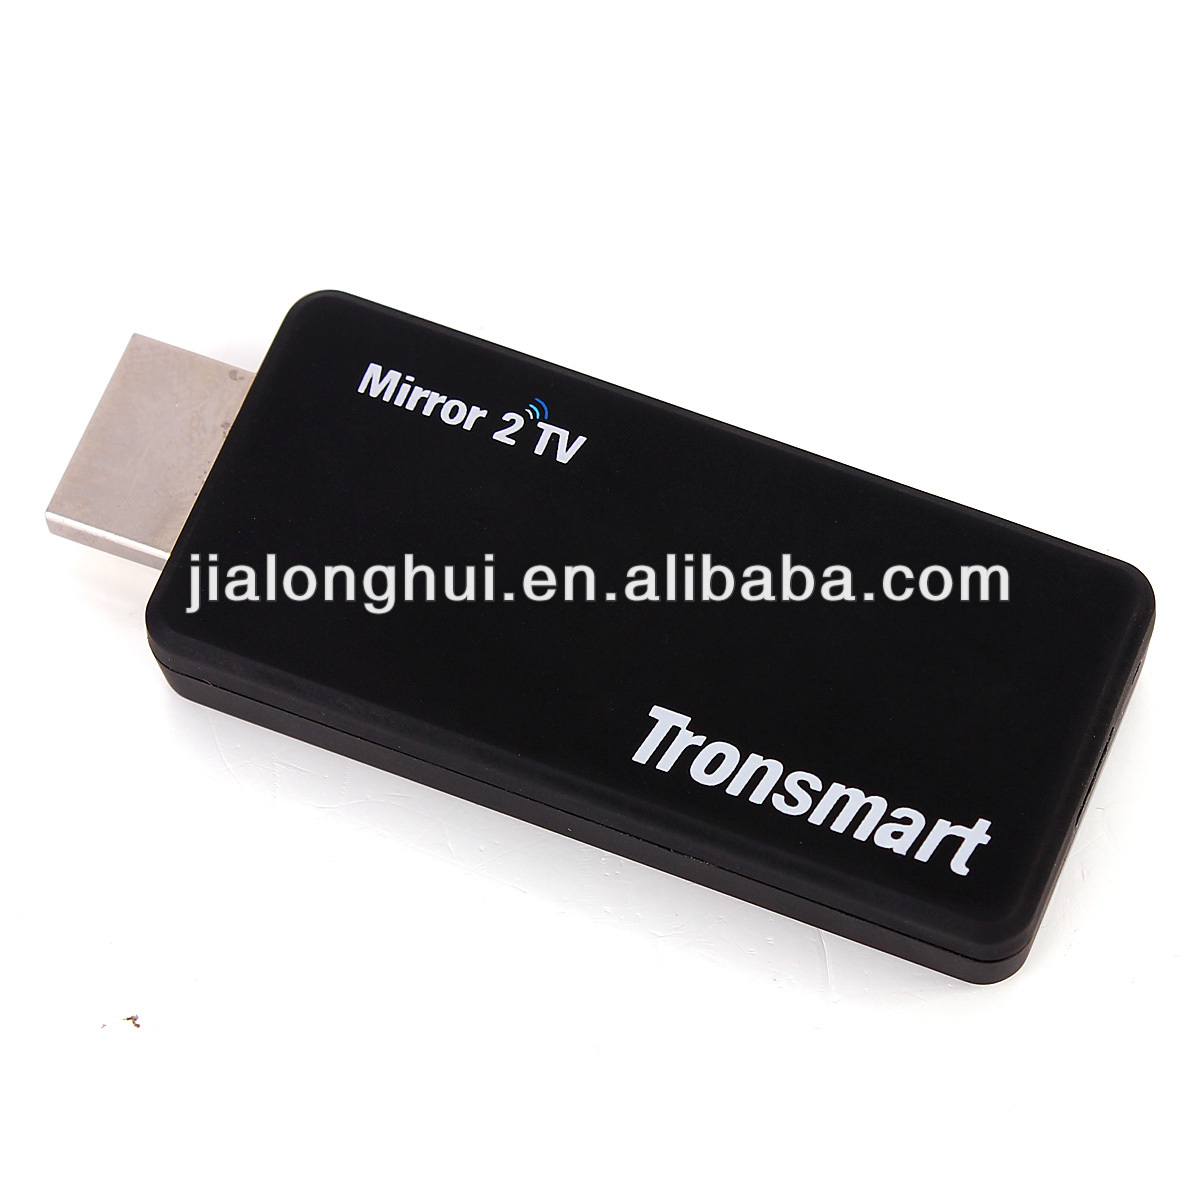 Tronsmart T1000 Miracast <strong>Dongle</strong> Better than Google Chromecast HDMI Wireless Display DLNA Ezcast Mirror2TV IPTV Android <strong>TV</strong> Stick